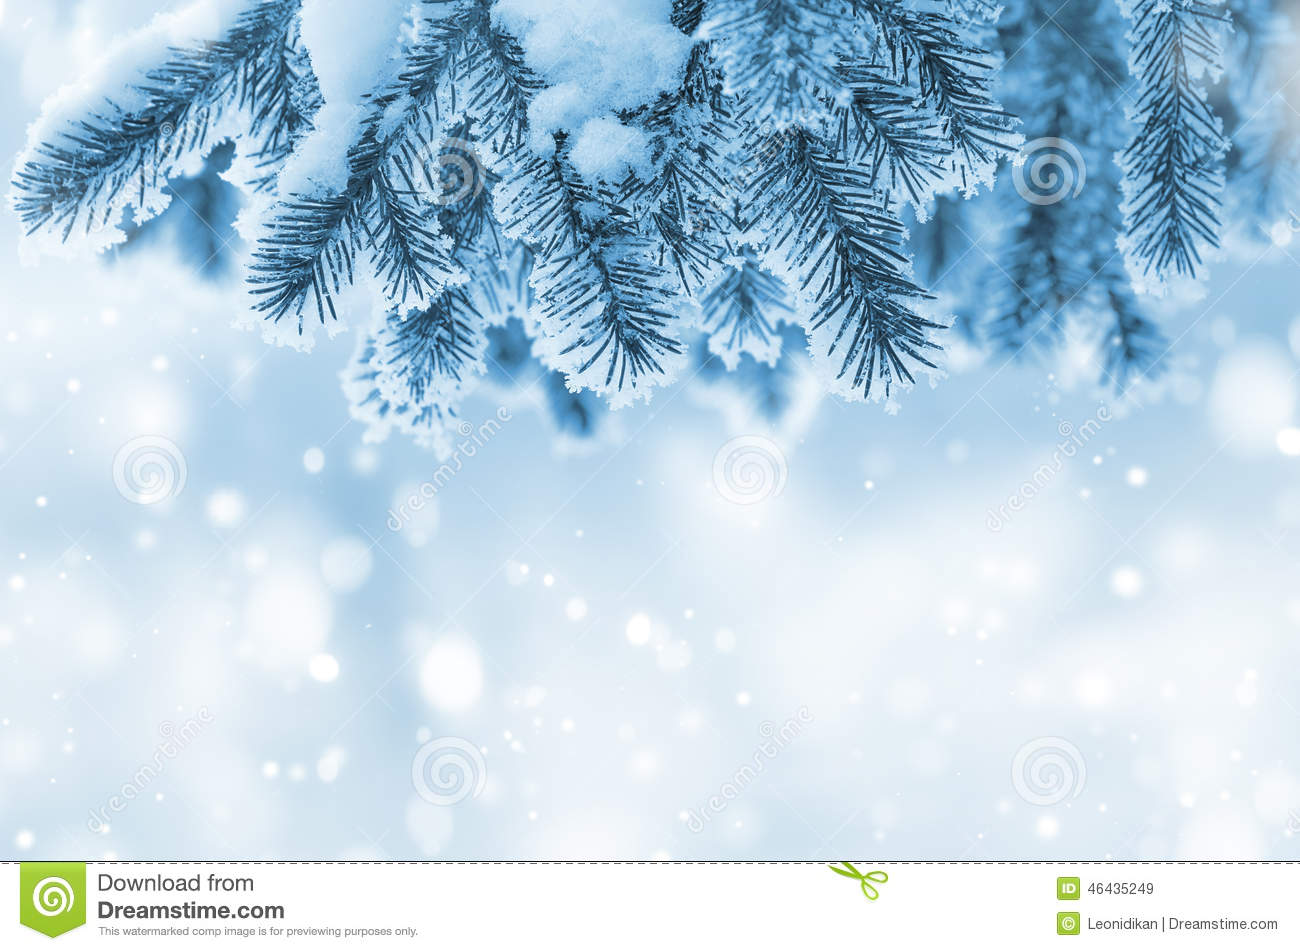 df23f35cbeb Winter background stock image. Image of frozen, beauty - 46435249